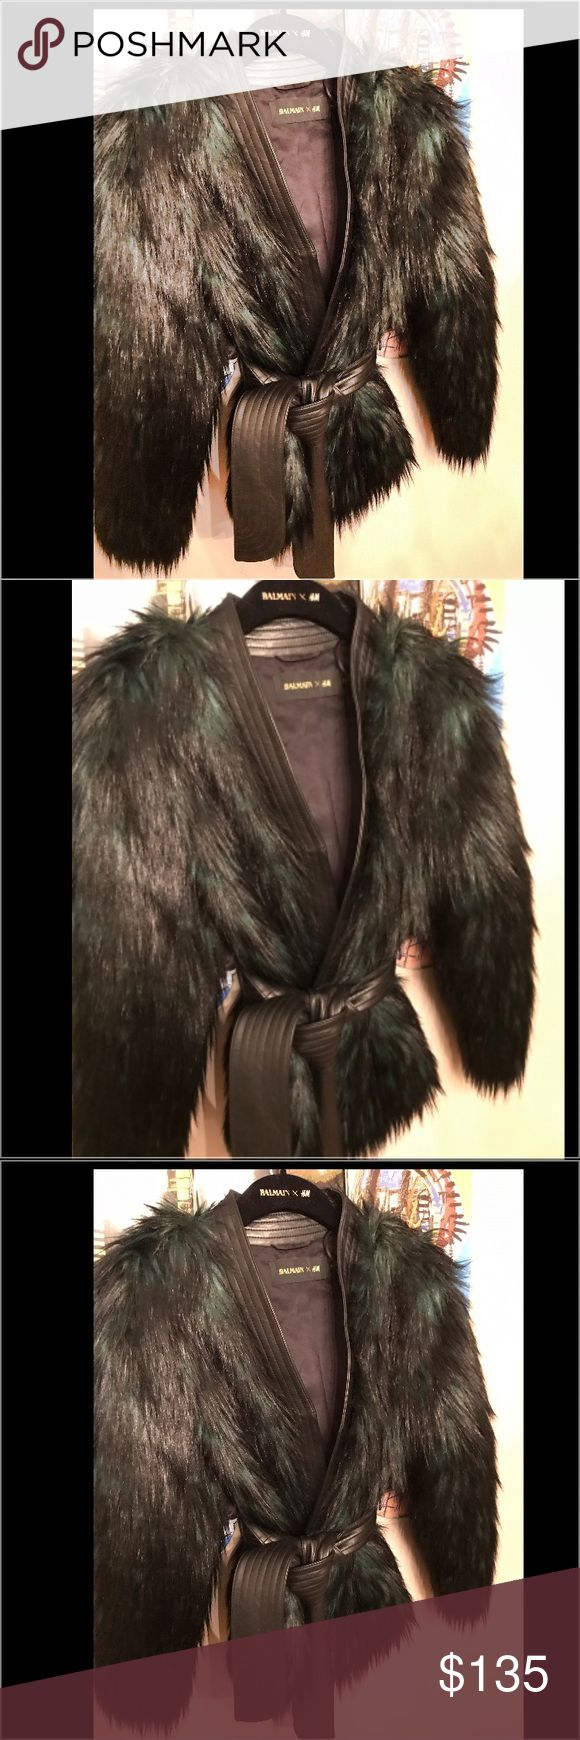 Balmain H&M faux fur jacket with Belt size 8🔥🔥 Green/black fur, size 8 never worn brand new ships with Balmain for H&M dust Bag....I purchased 1 too many things from this sale, so some of it has to go...don't miss out! 🔥🔥🔥🔥🔥 Balmian H&M Jackets & Coats